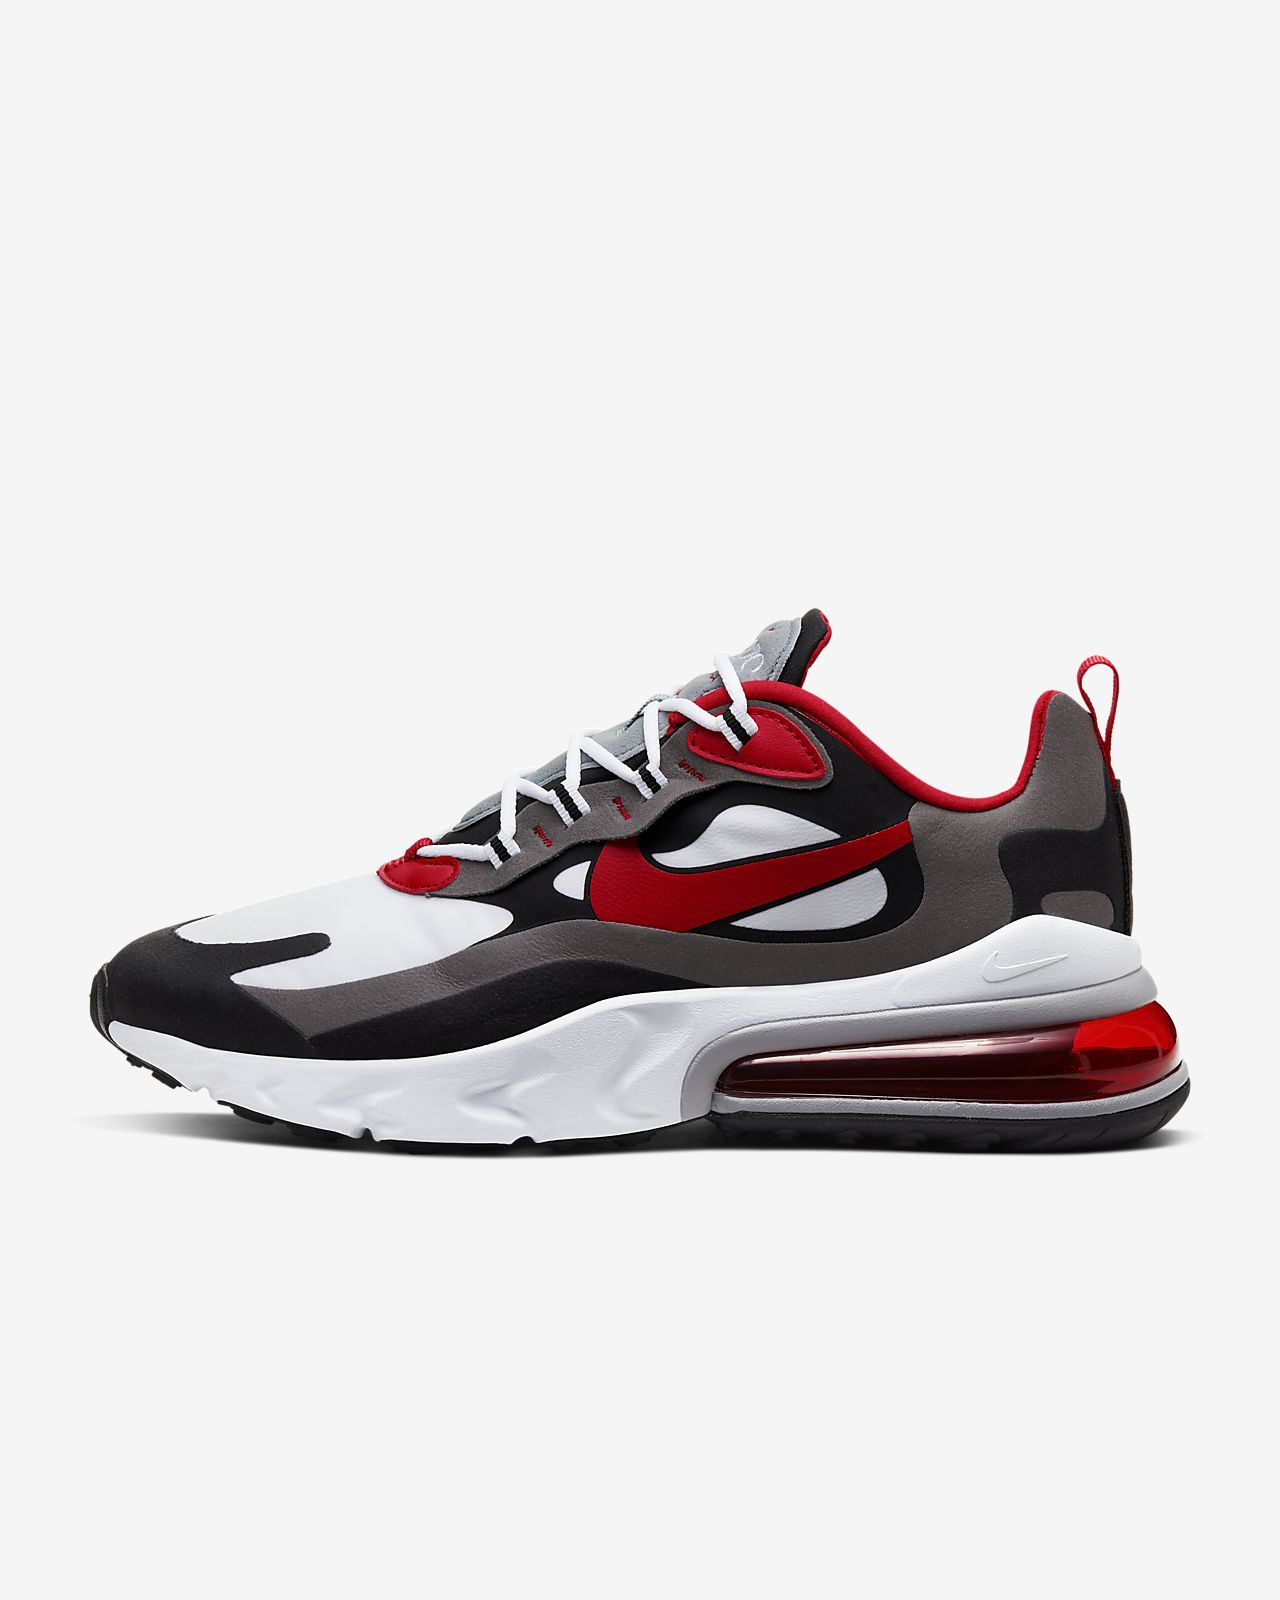 air max 270 react black and red